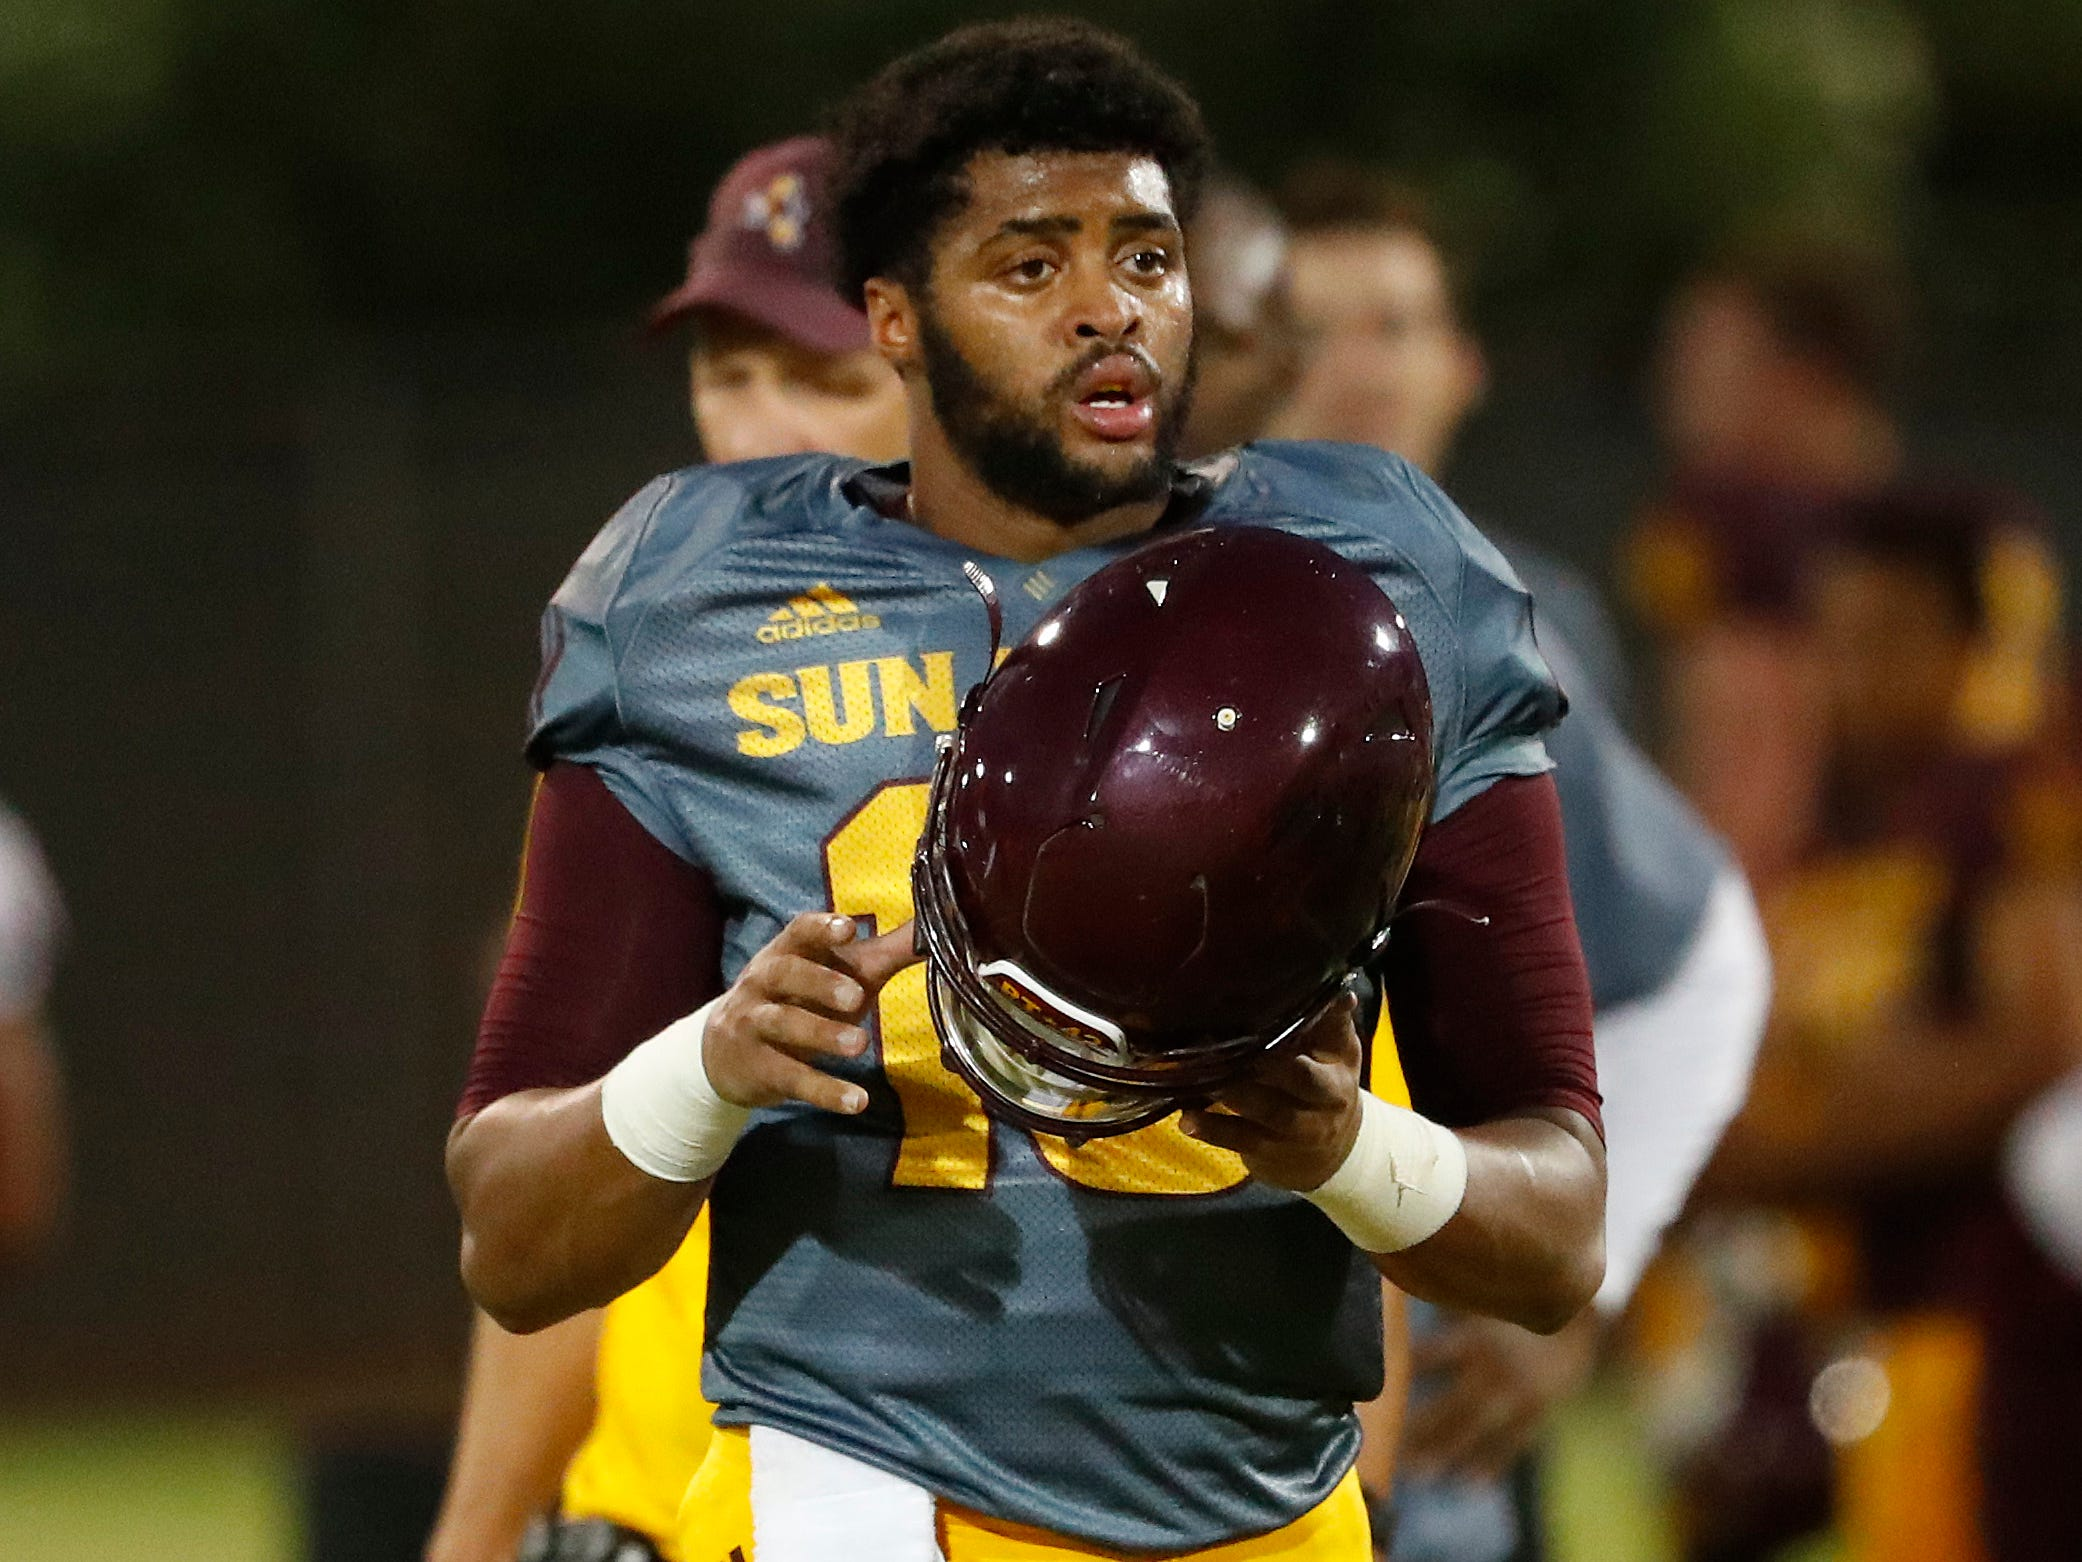 ASU's Dillon Sterling-Cole (15) puts his helmet on during the ASU scrimmage at Kajikawa Practice Fields in Tempe, Ariz. on Aug. 11, 2018.